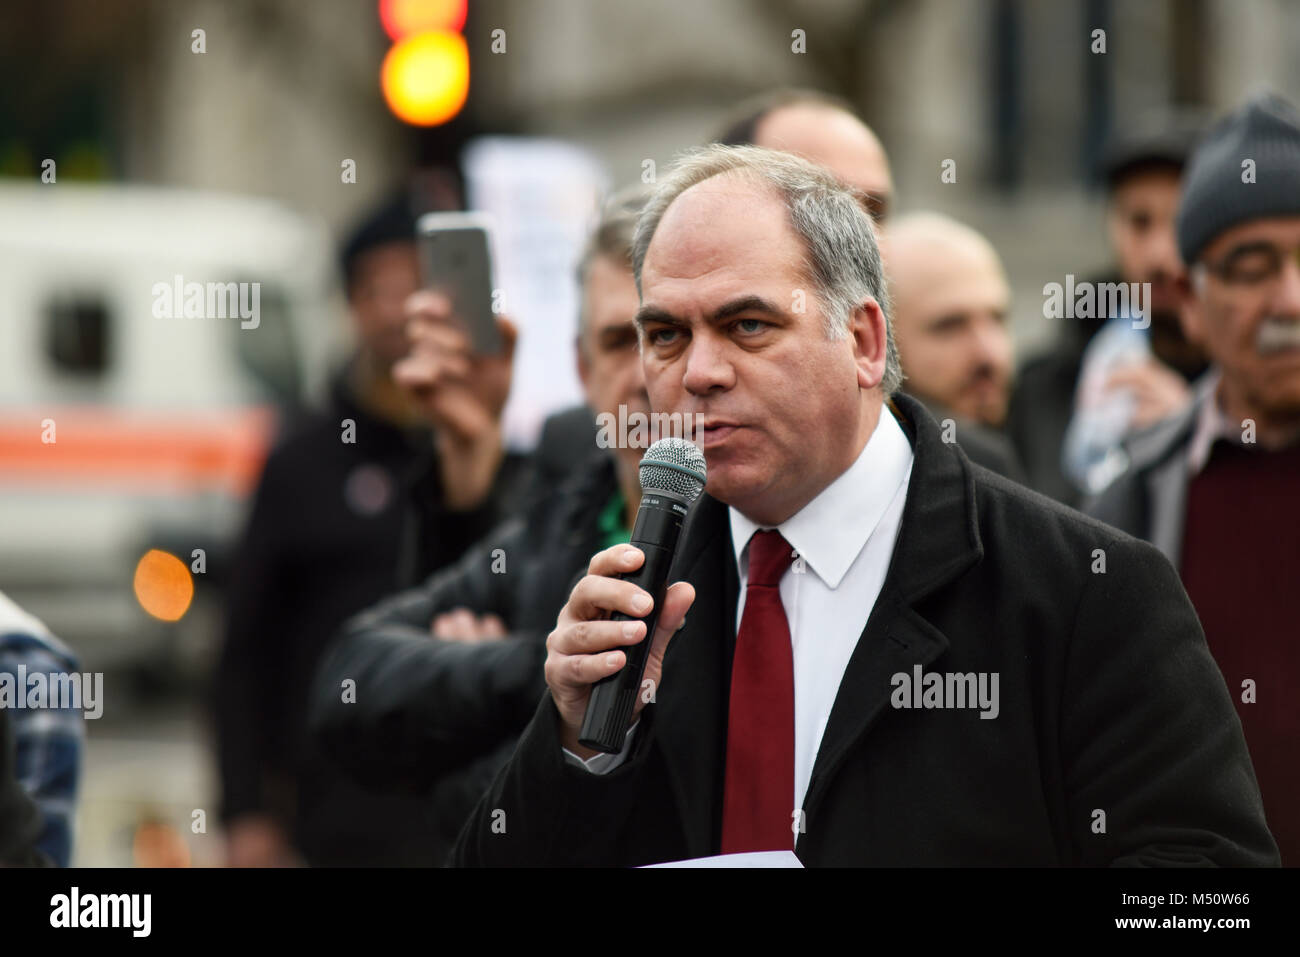 bambos-charalambous-mp-speaking-at-the-demonstration-against-alleged-M50W66.jpg